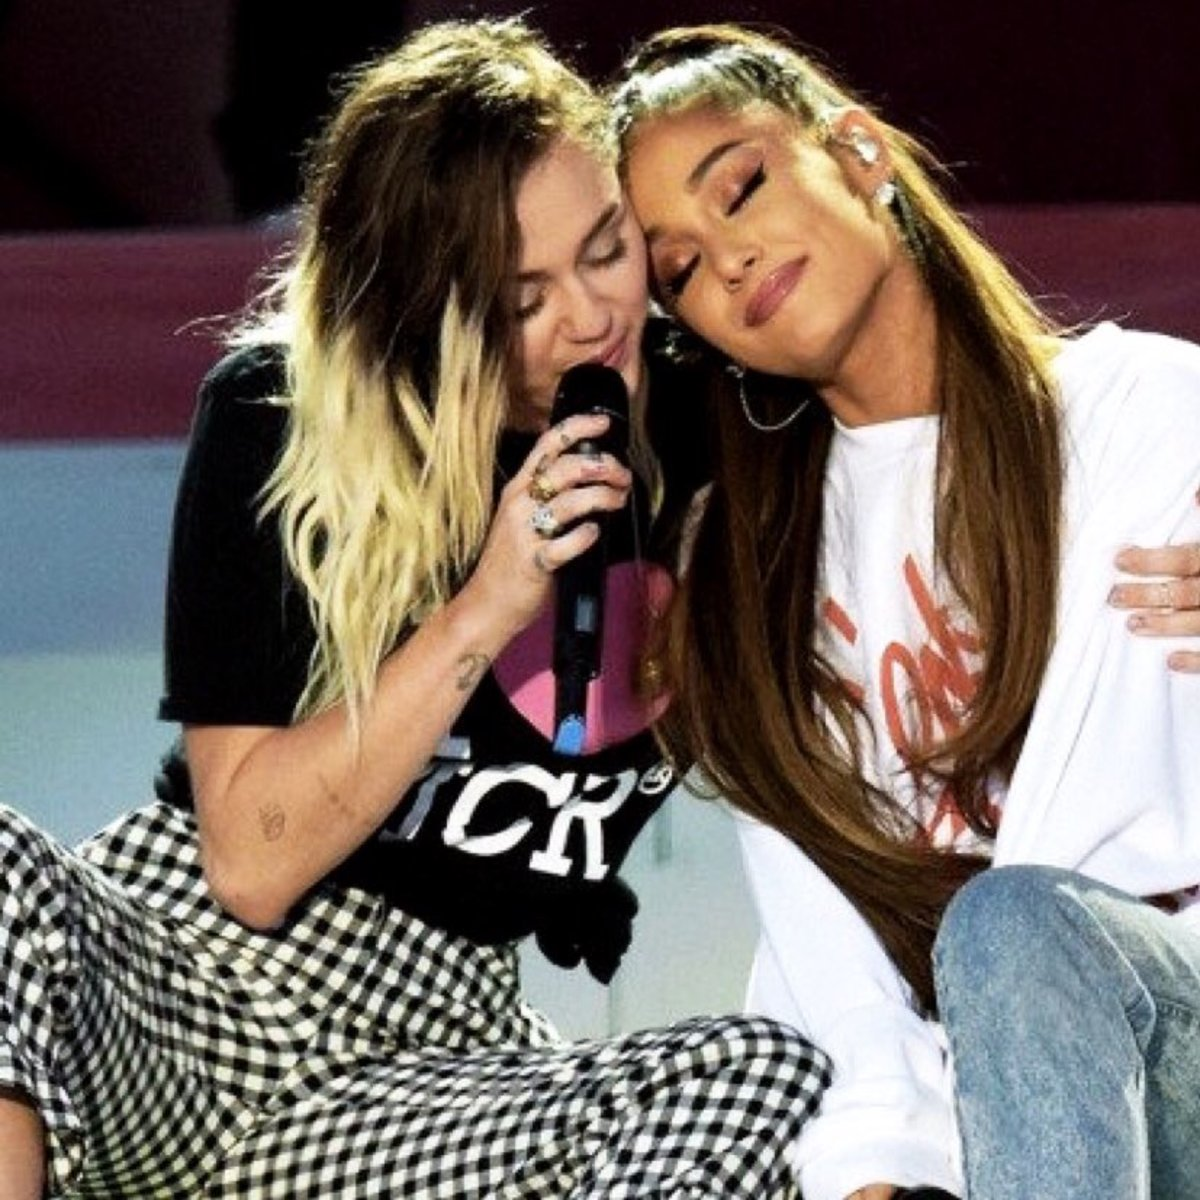 Miley and Ariana